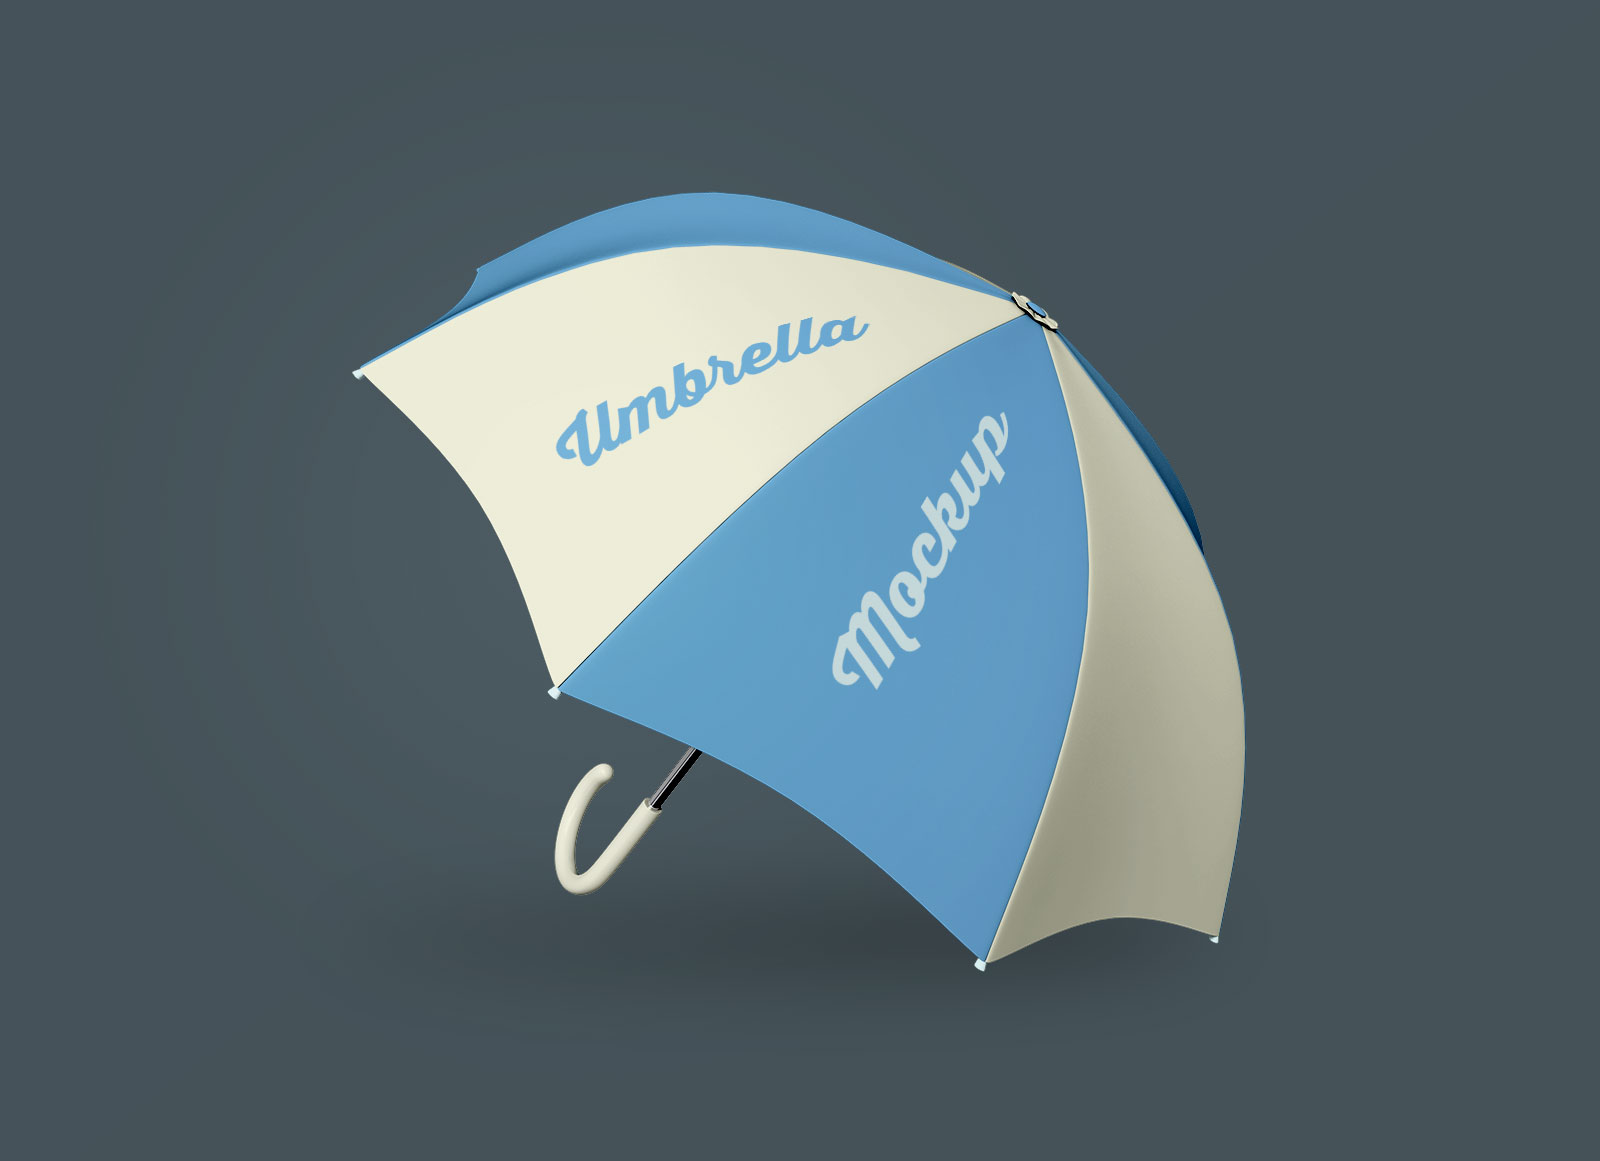 Free-Umbrella-Mockup-PSD-Set